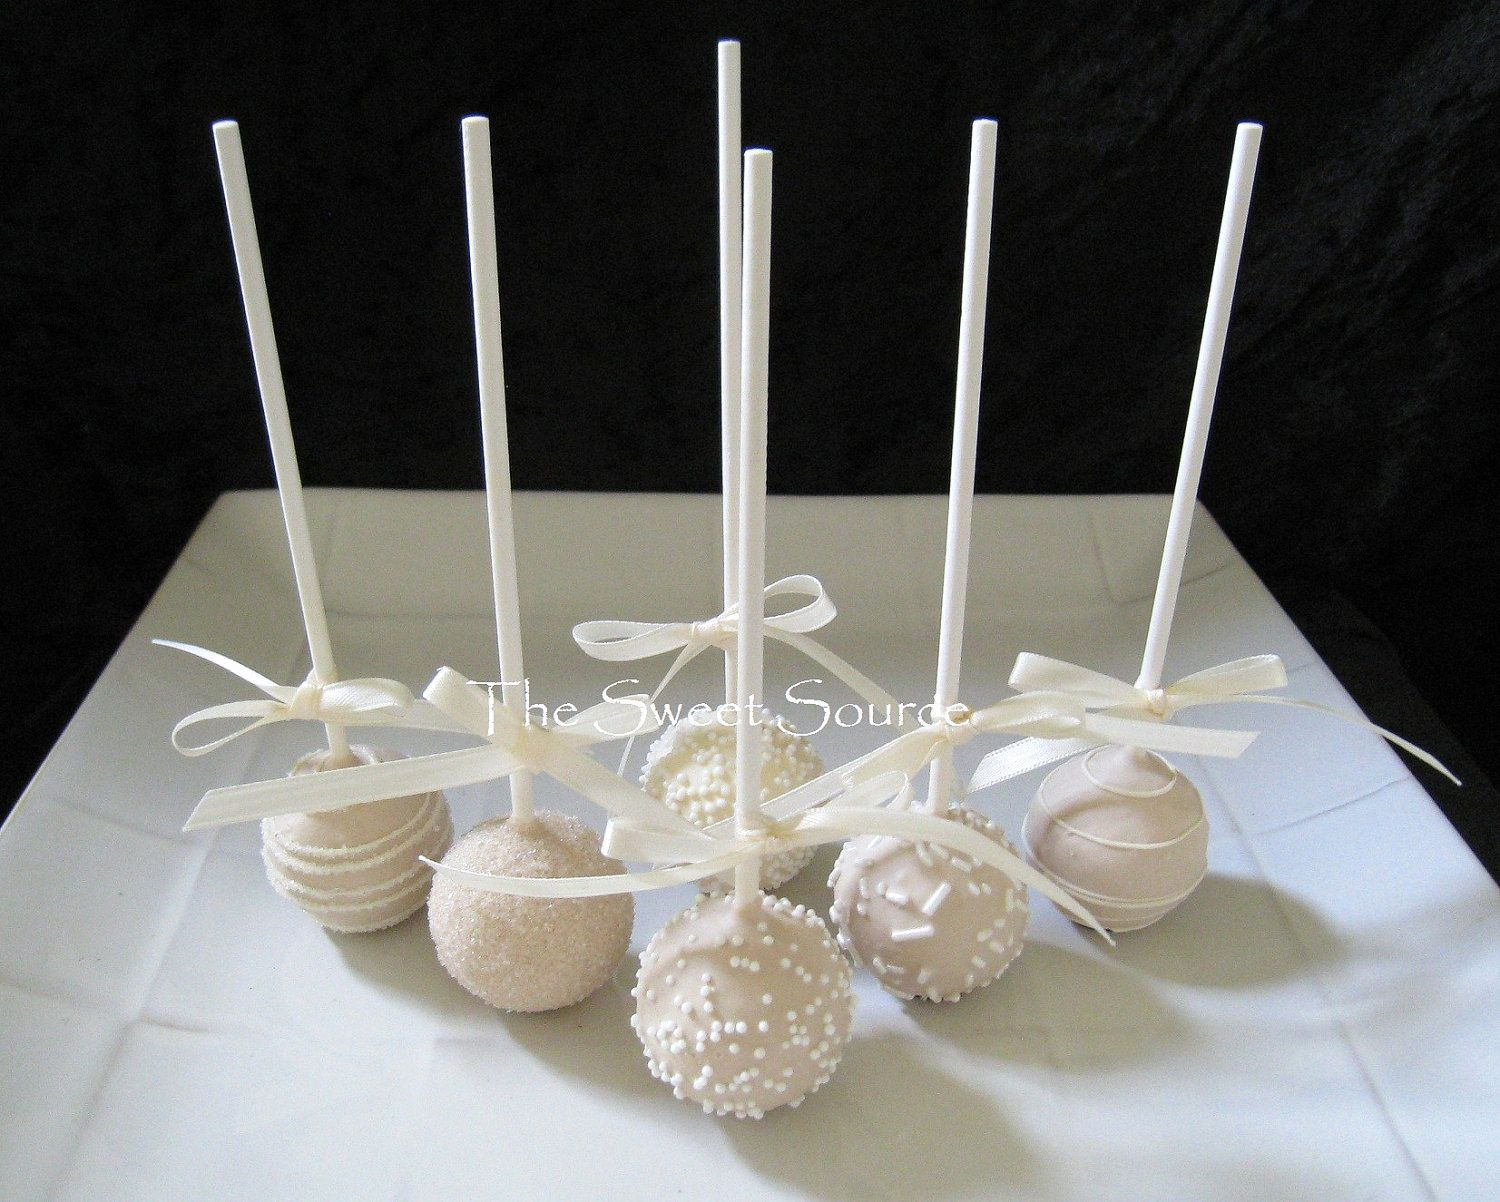 Pin by kristina manoogian on cake pops pinterest cake pop and cake